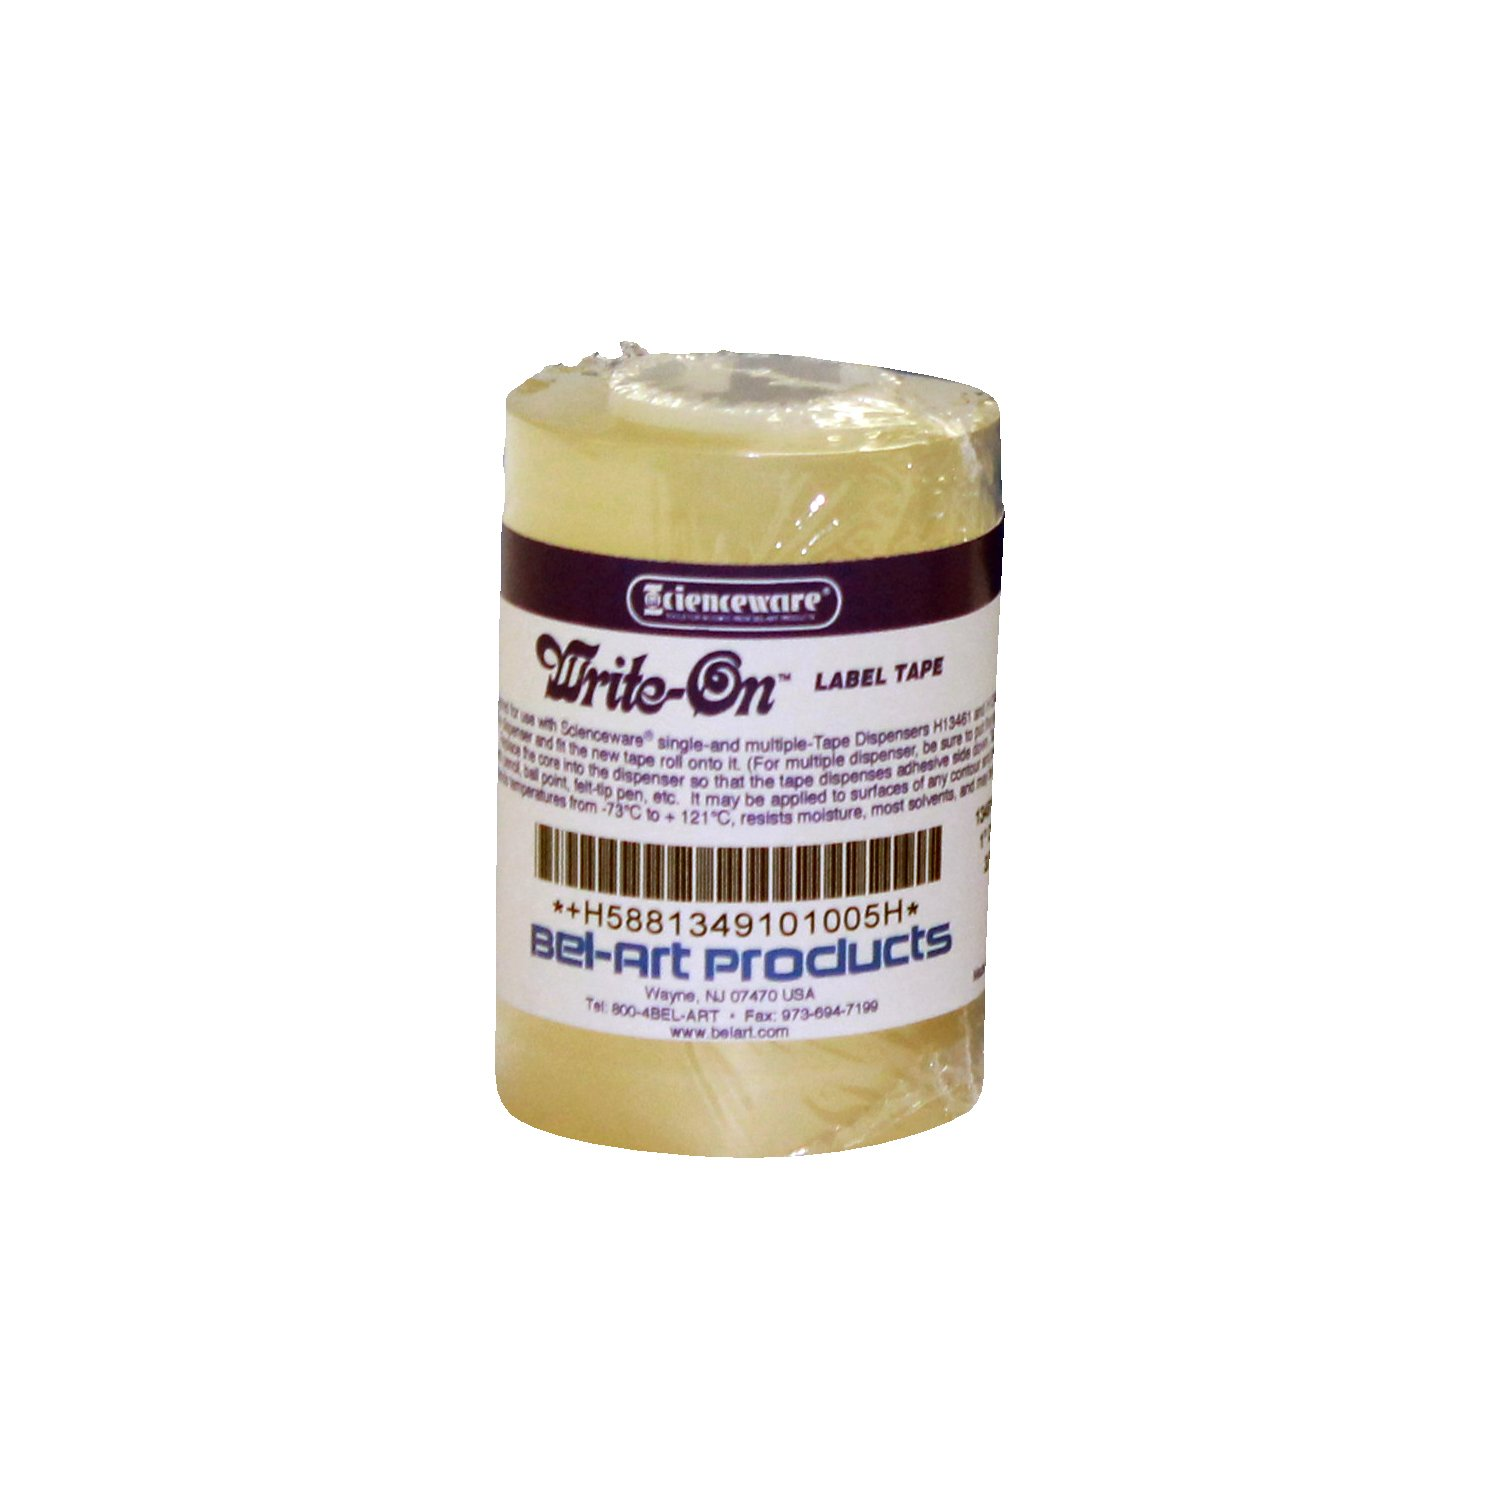 Bel-Art Clear Tape for Protective Labeling System; 36yd Length, 1 in. Width, 1 in. Core (Pack of 3) (F13491-0100) by SP Scienceware